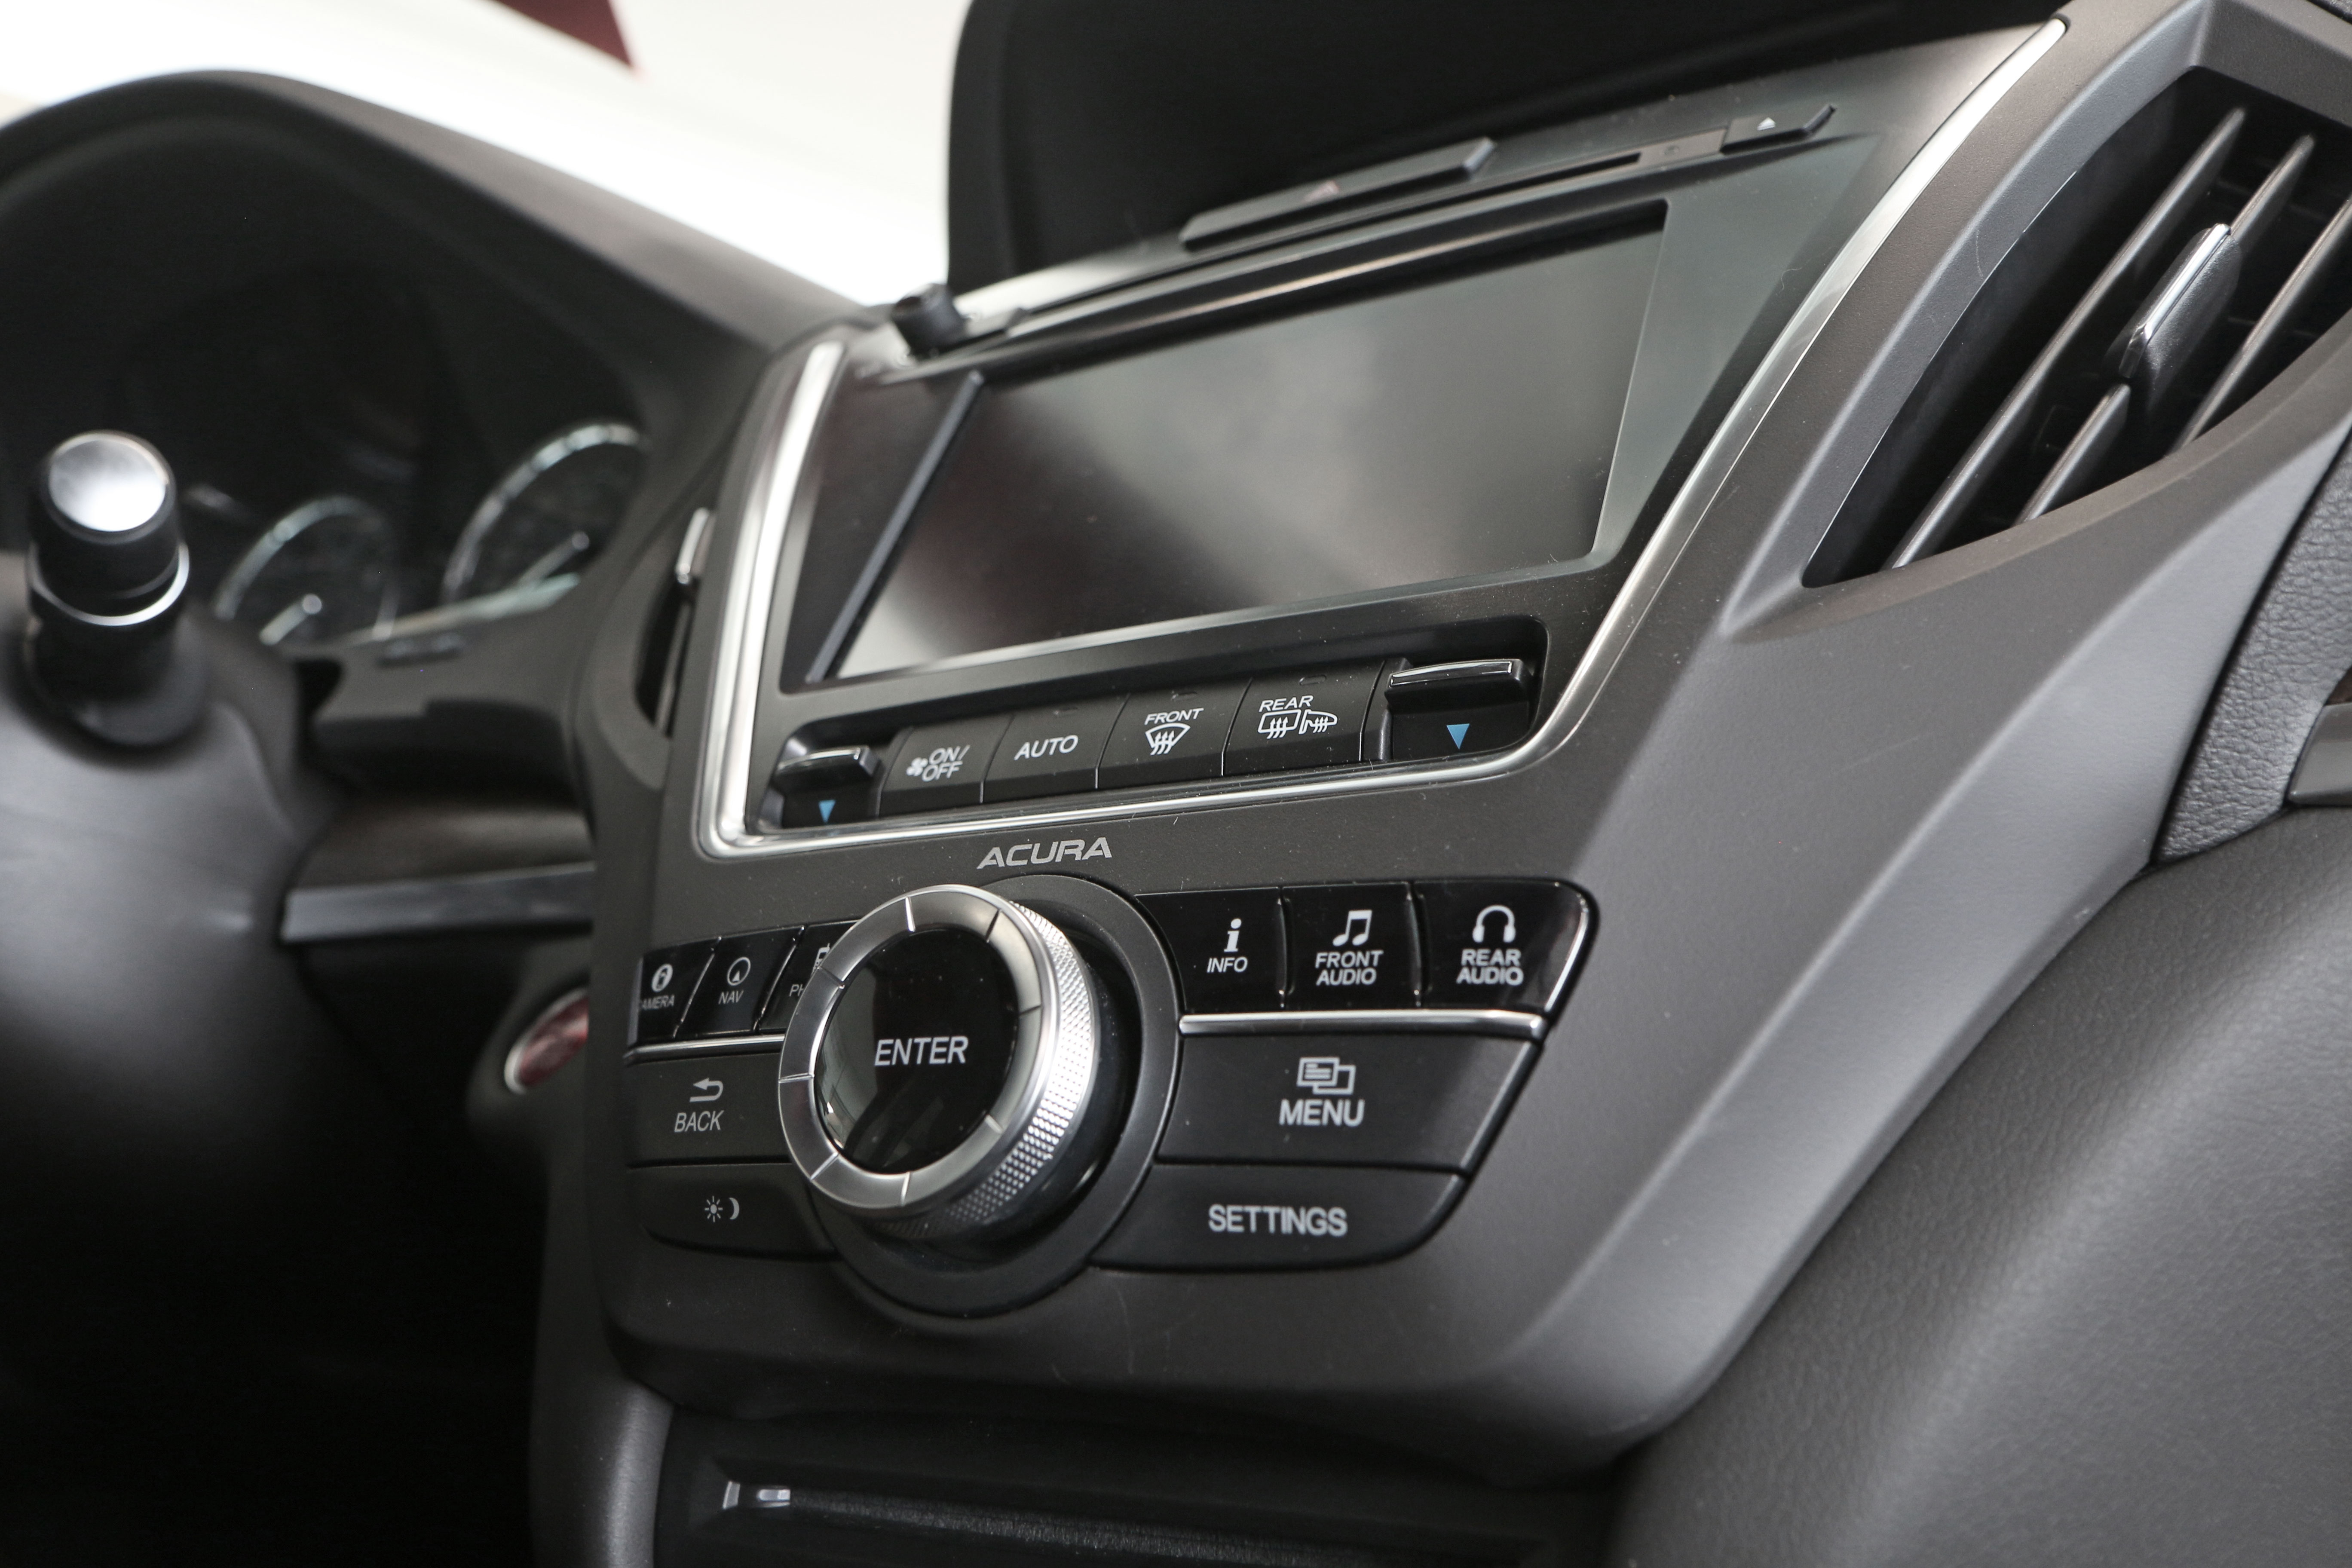 images cars best pinterest autos findlayacura mdx lease and acura motorcycles on